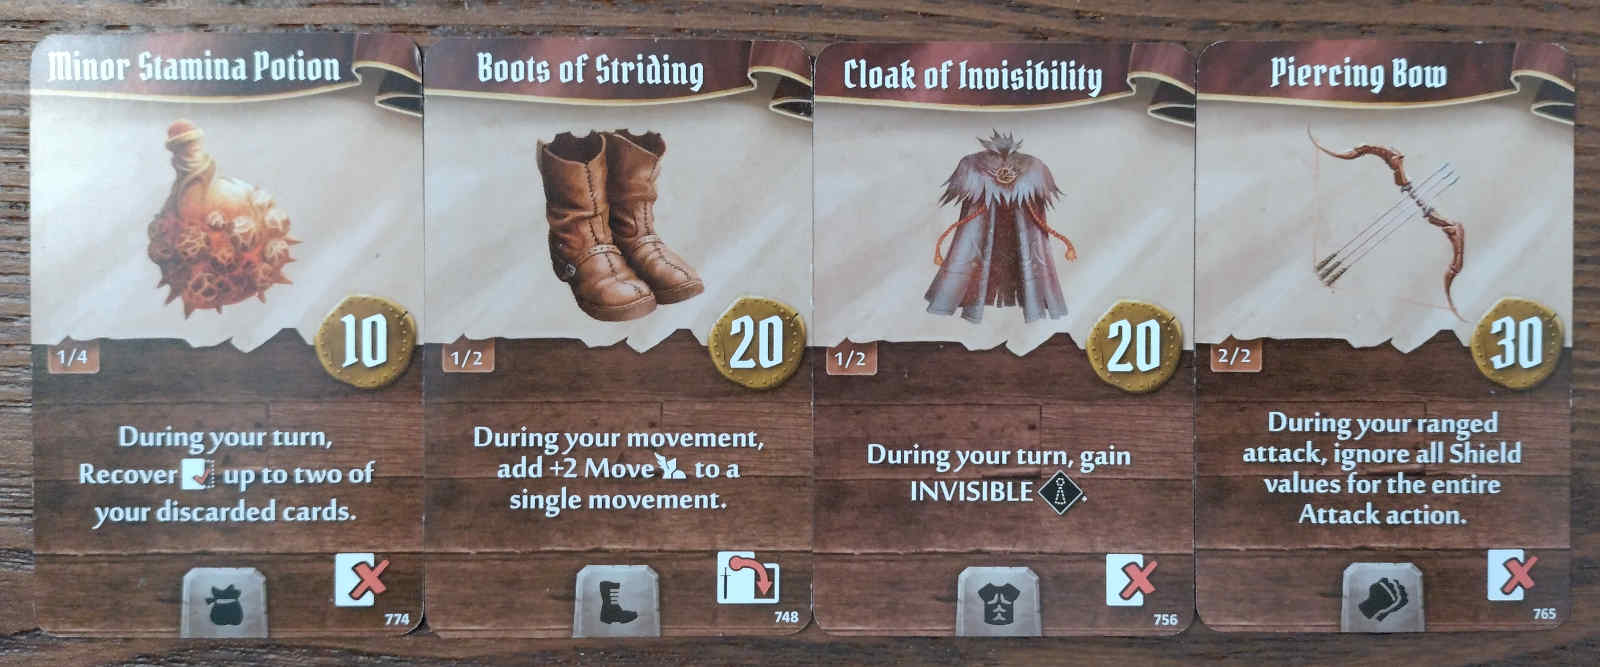 Doomstalker starting items - Minor Stamina Potion, Boots of Striding, Cloak of Invisibility and Piercing Bow